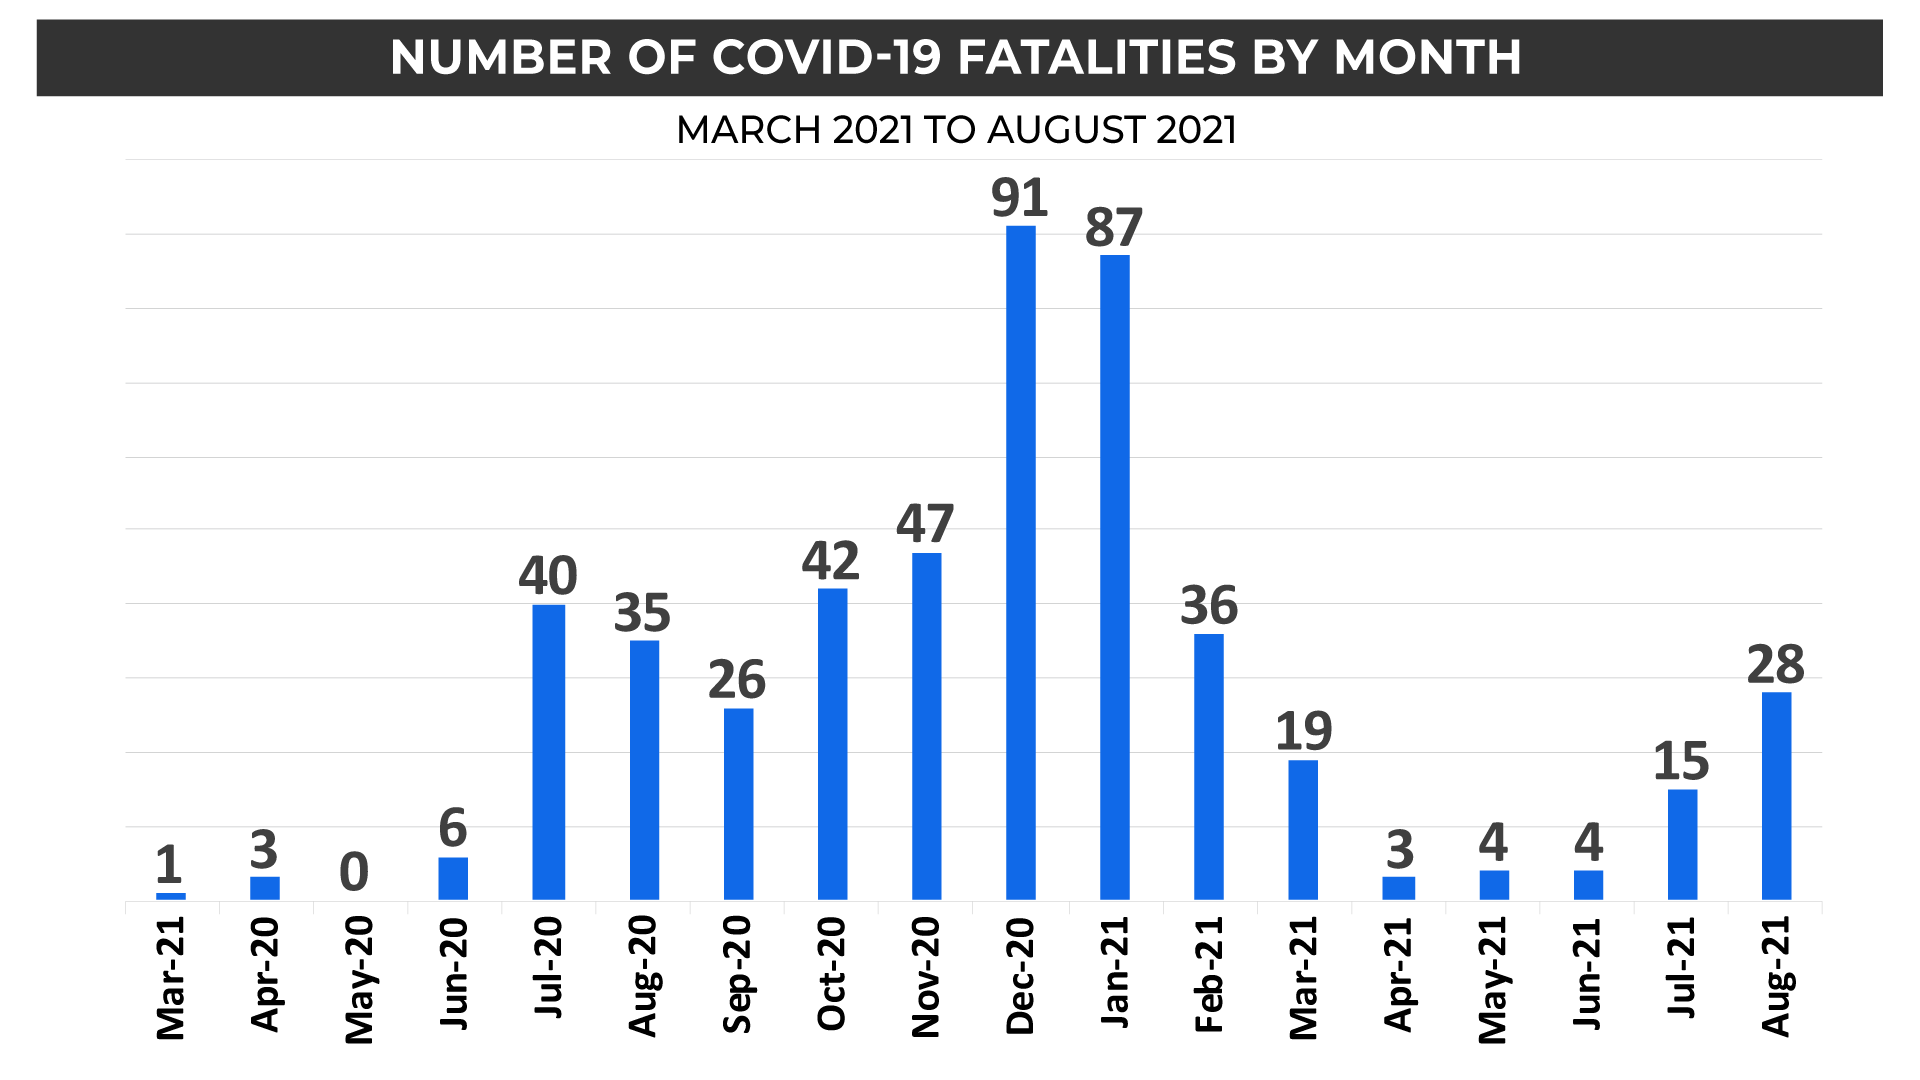 fatalities-month-august-2021